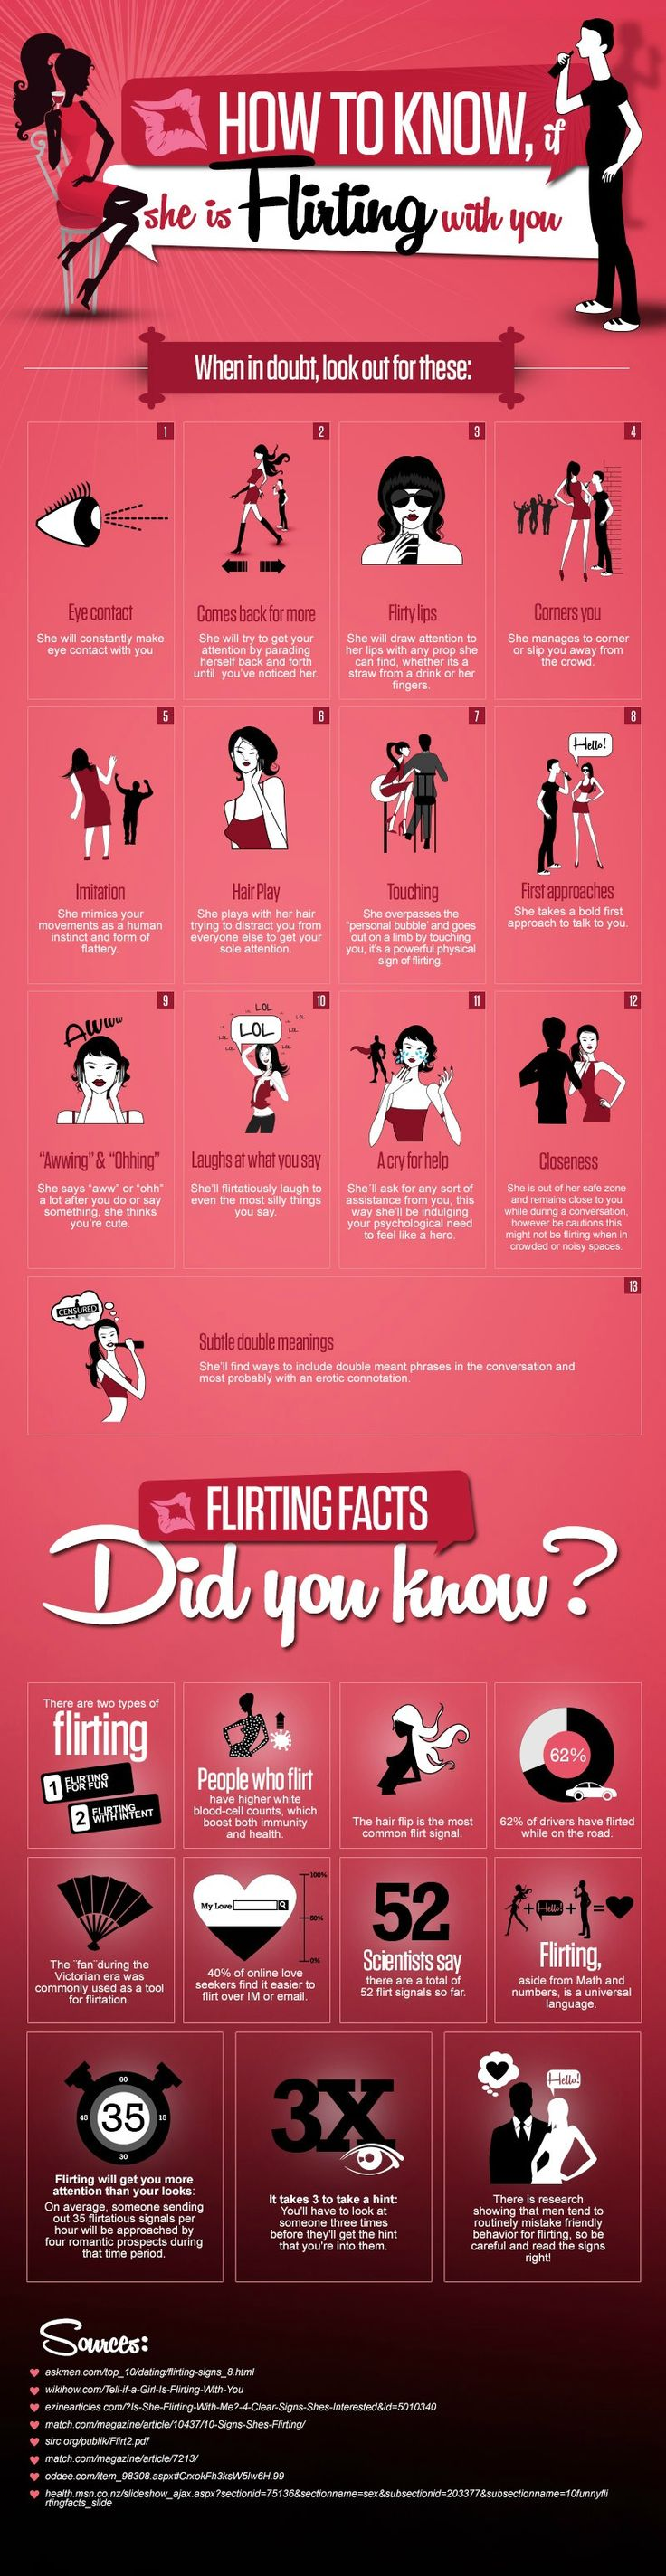 13 Signs If She Is Flirting With You - I can always make them laugh but I think it ends there, I'd be clueless if a girl flirted with me anyways lol